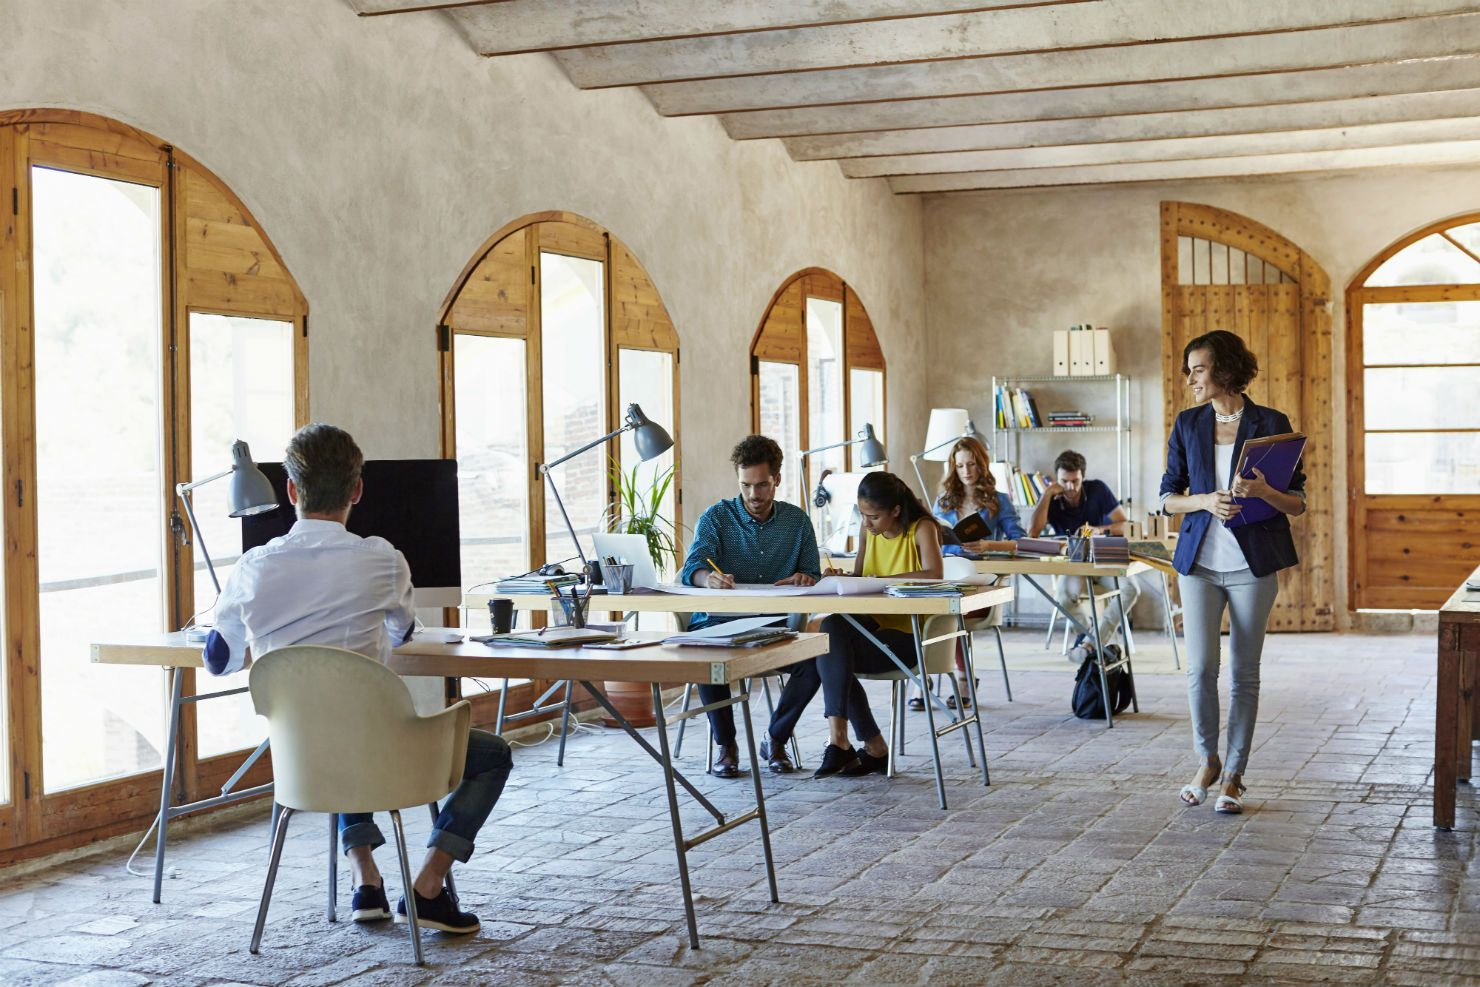 How Managers Can Create a Professional Work Environment